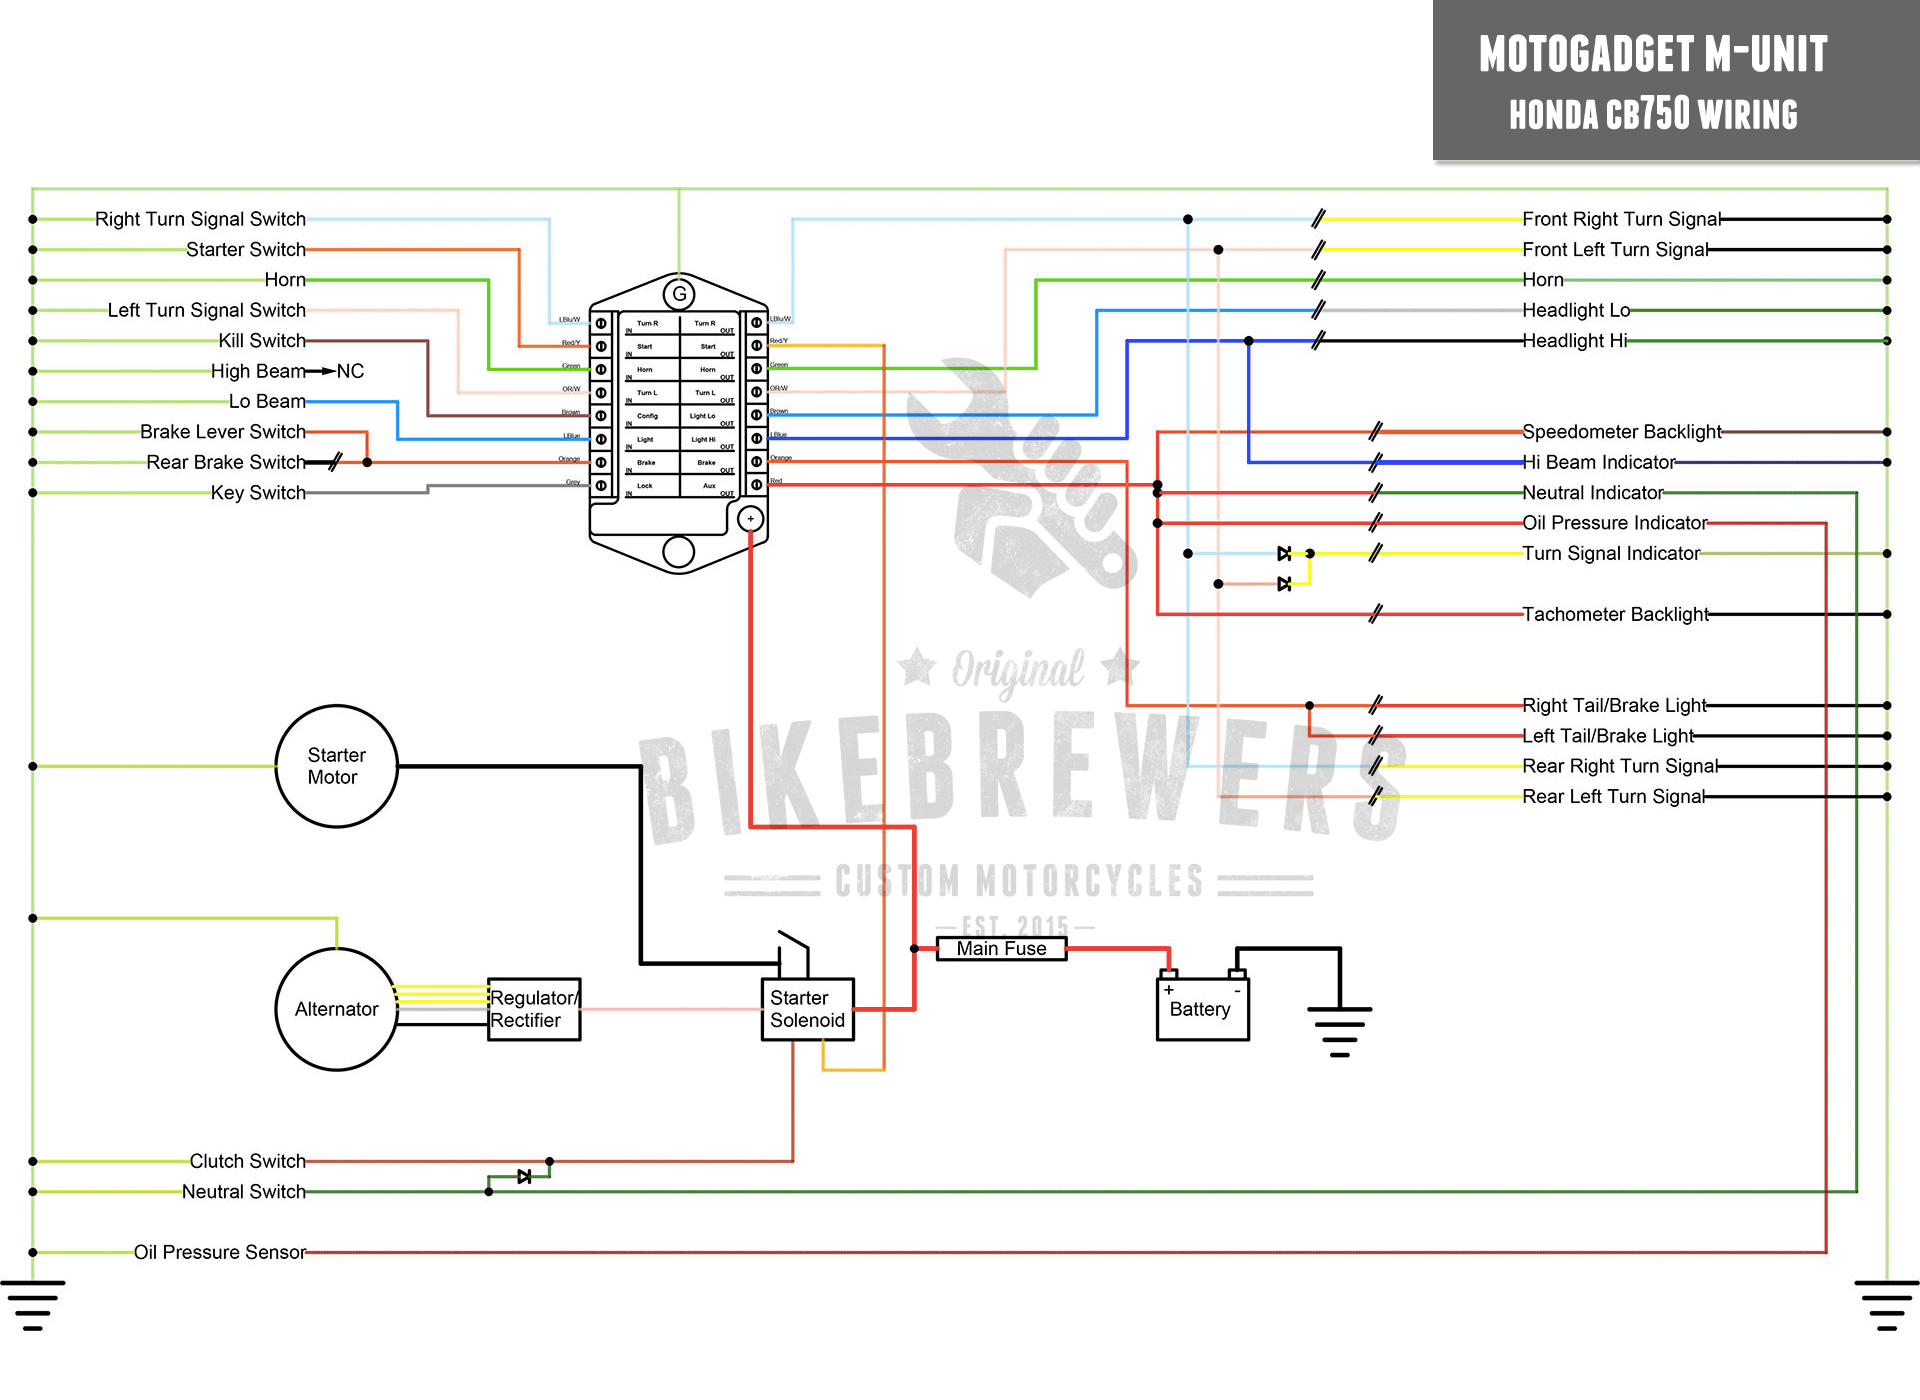 hight resolution of caf racer wiring bikebrewerscom wiring diagram val cafe bike wiring diagram wiring diagram caf racer wiring